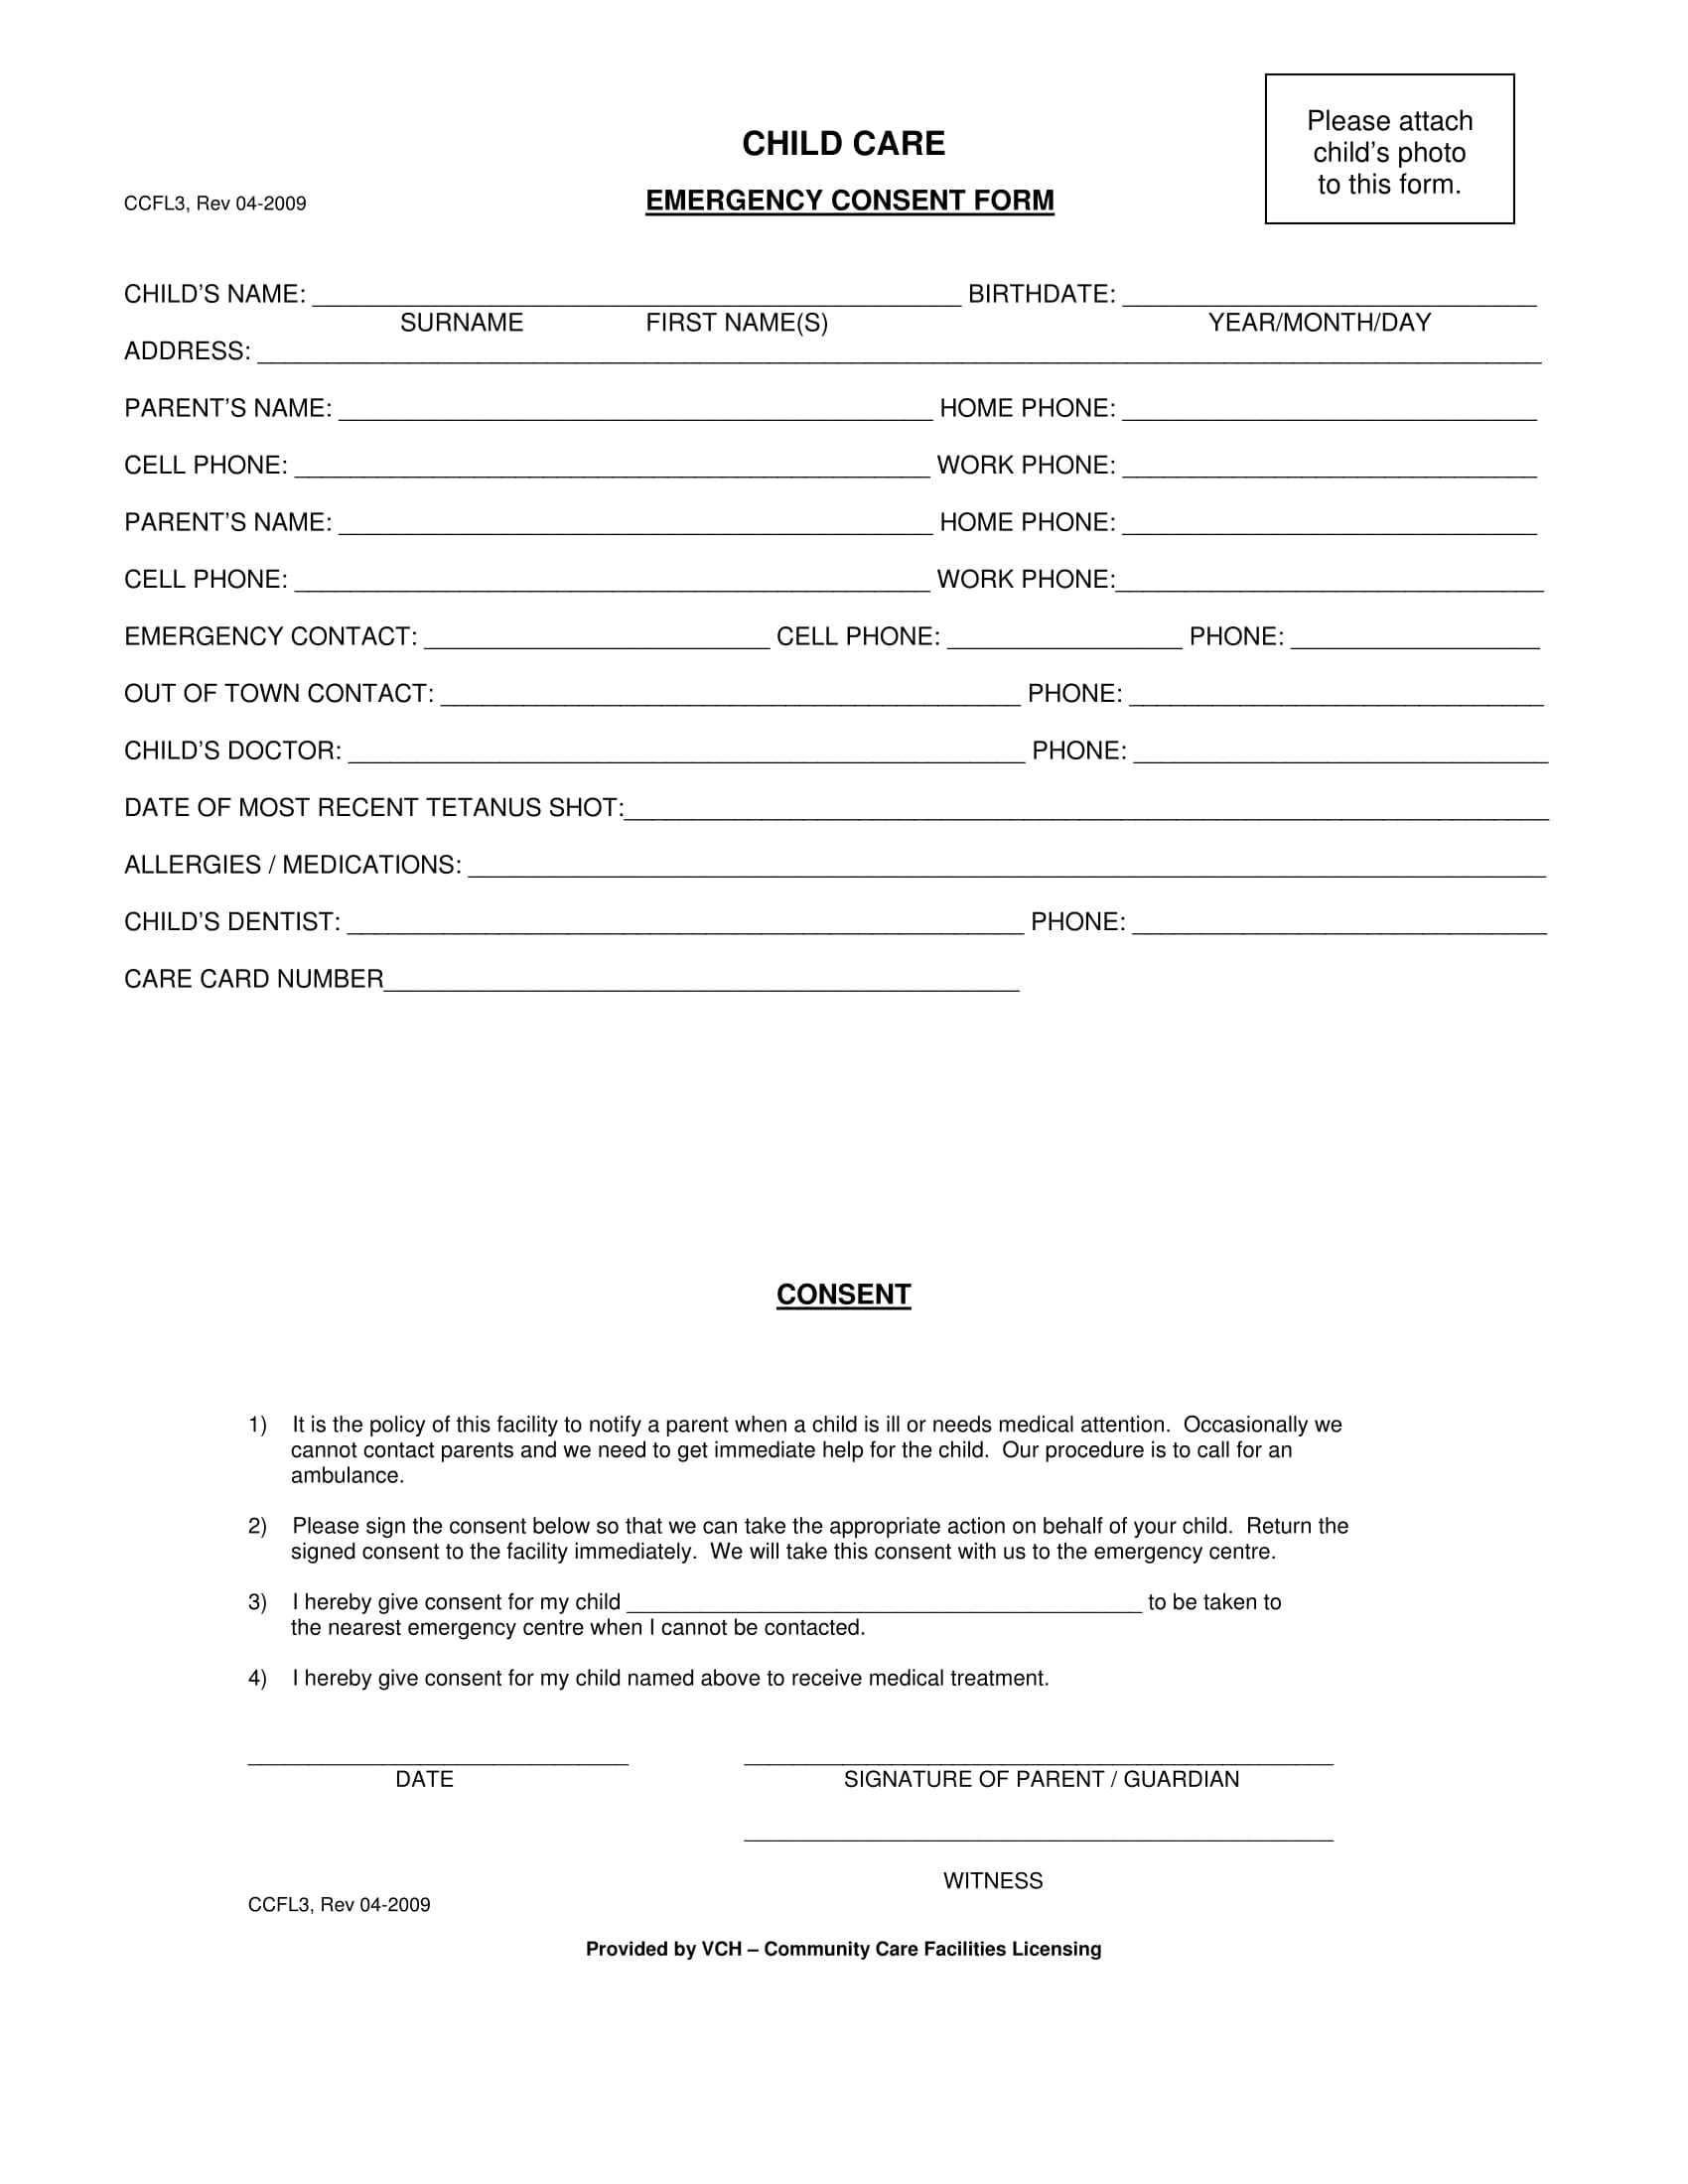 child care medical consent form 1